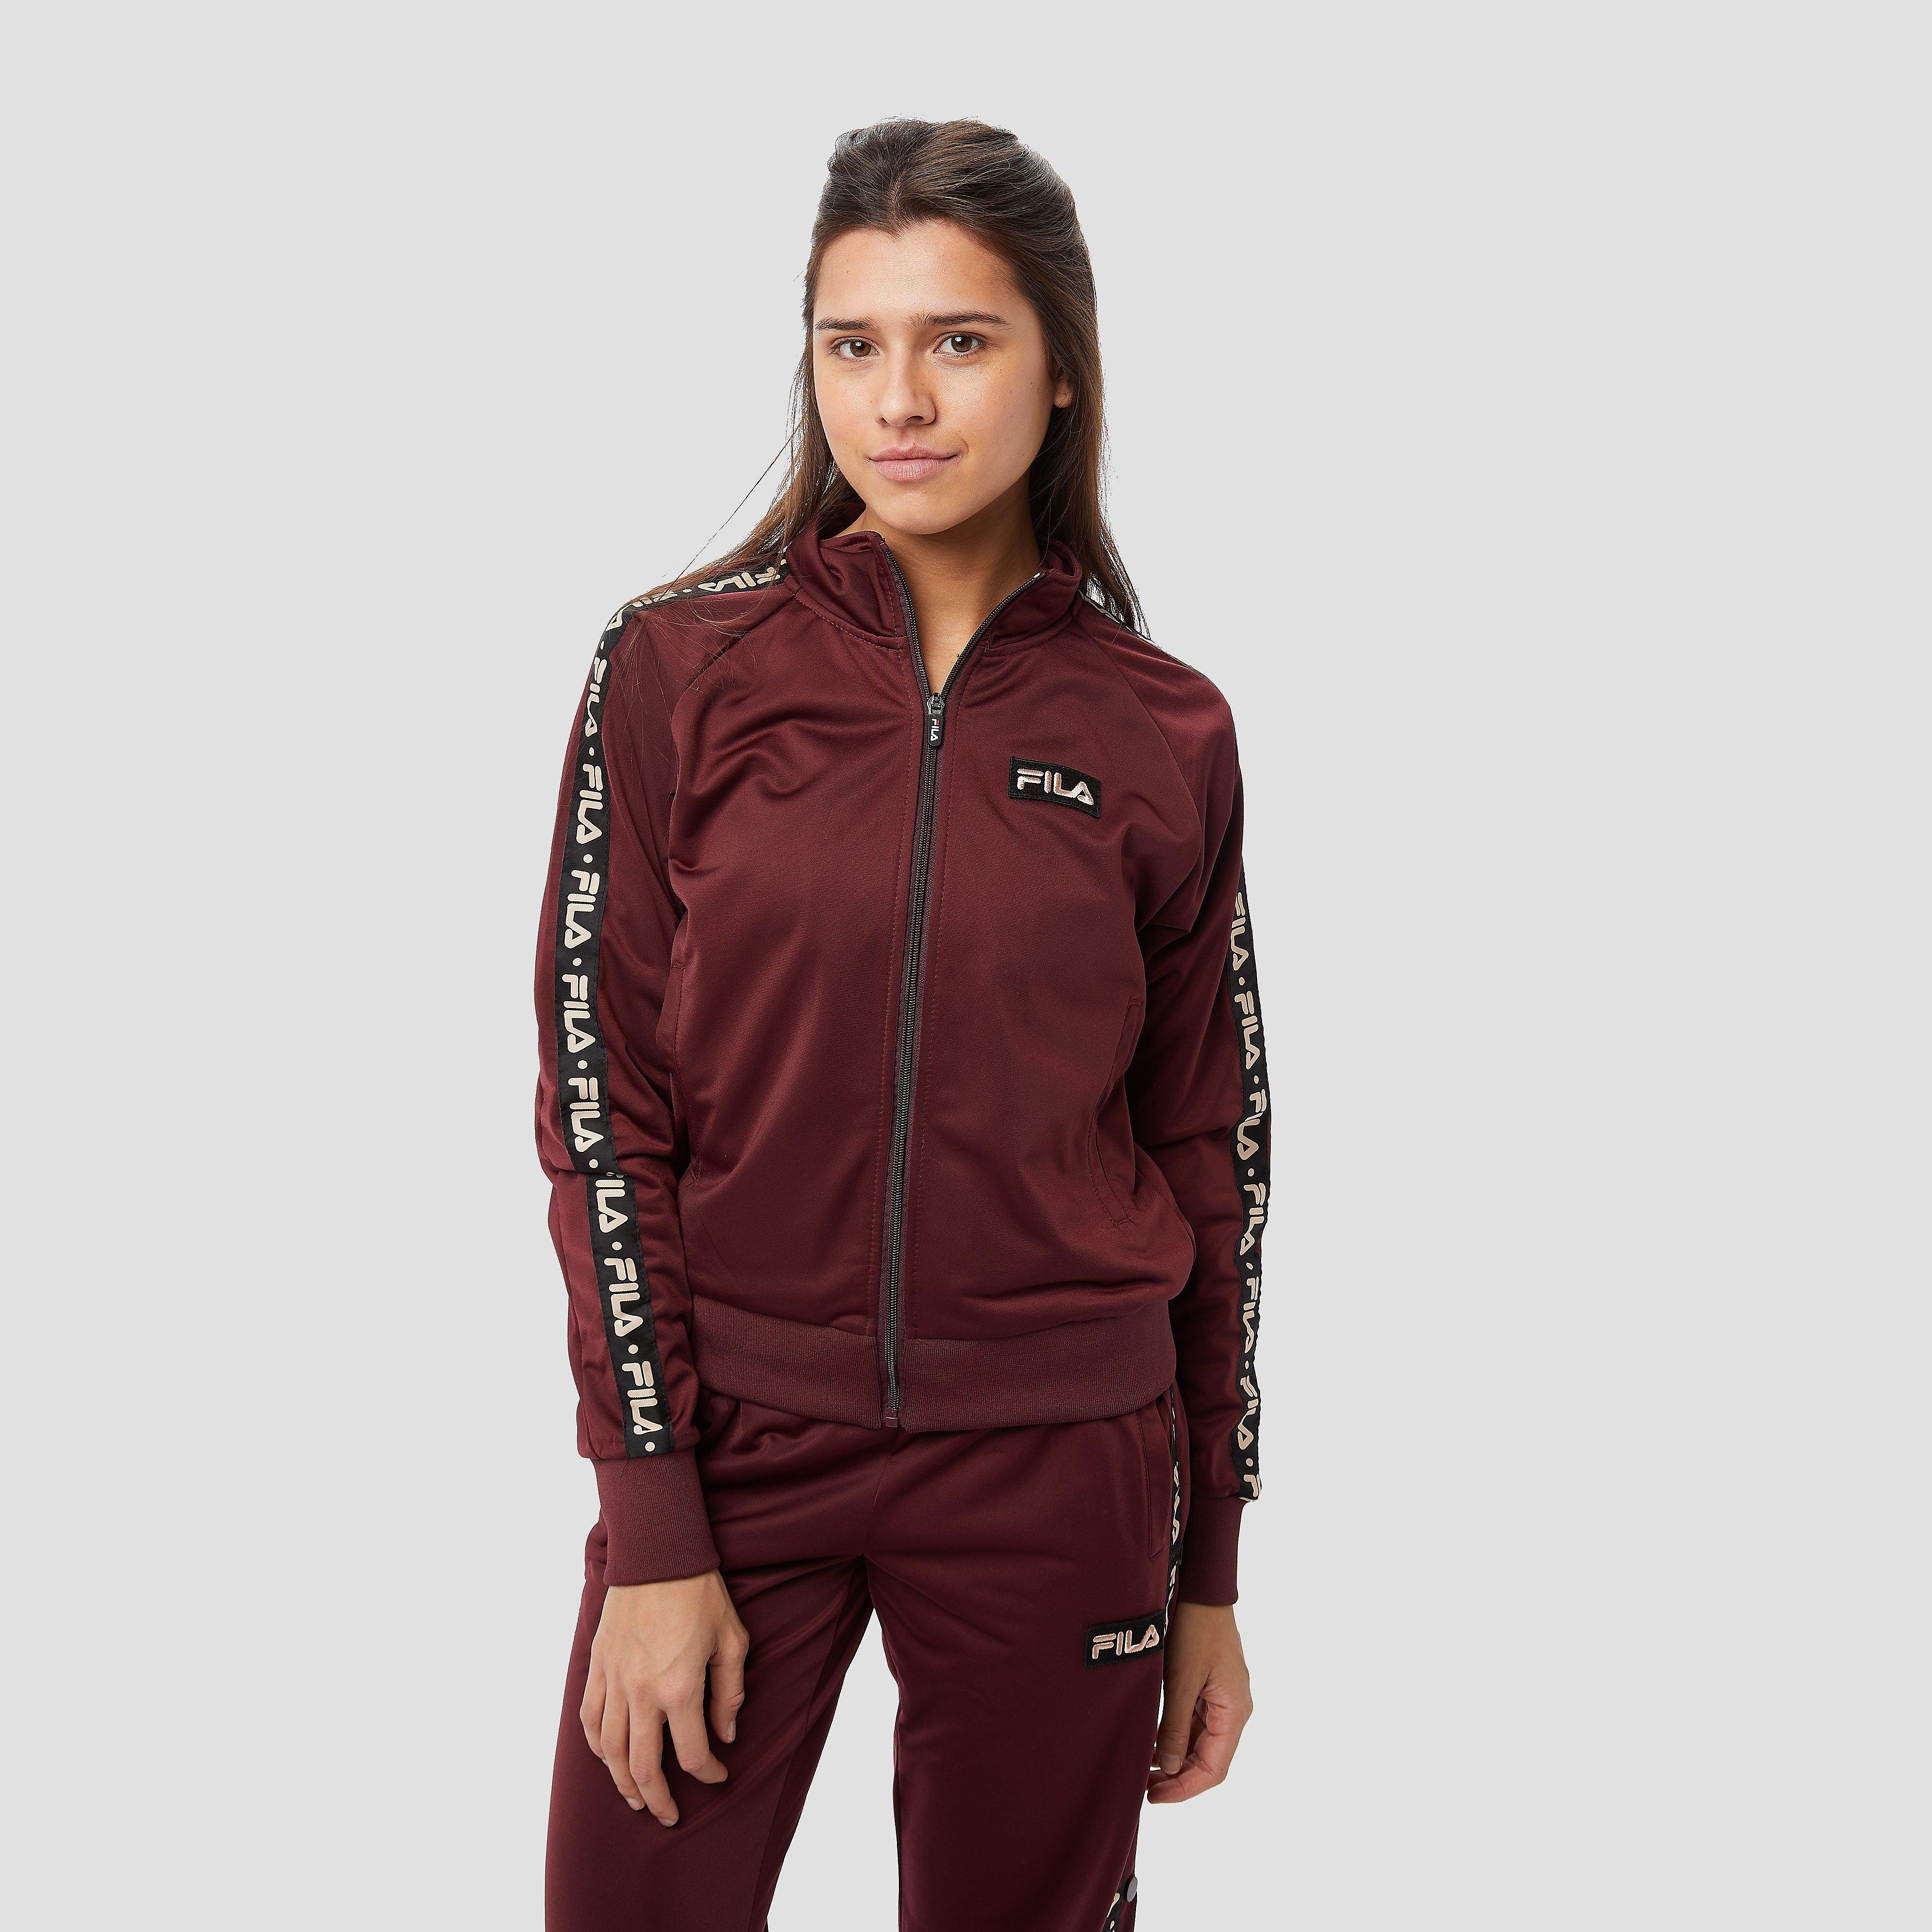 FILA Mair trainingsjas bordeaux rood dames Dames